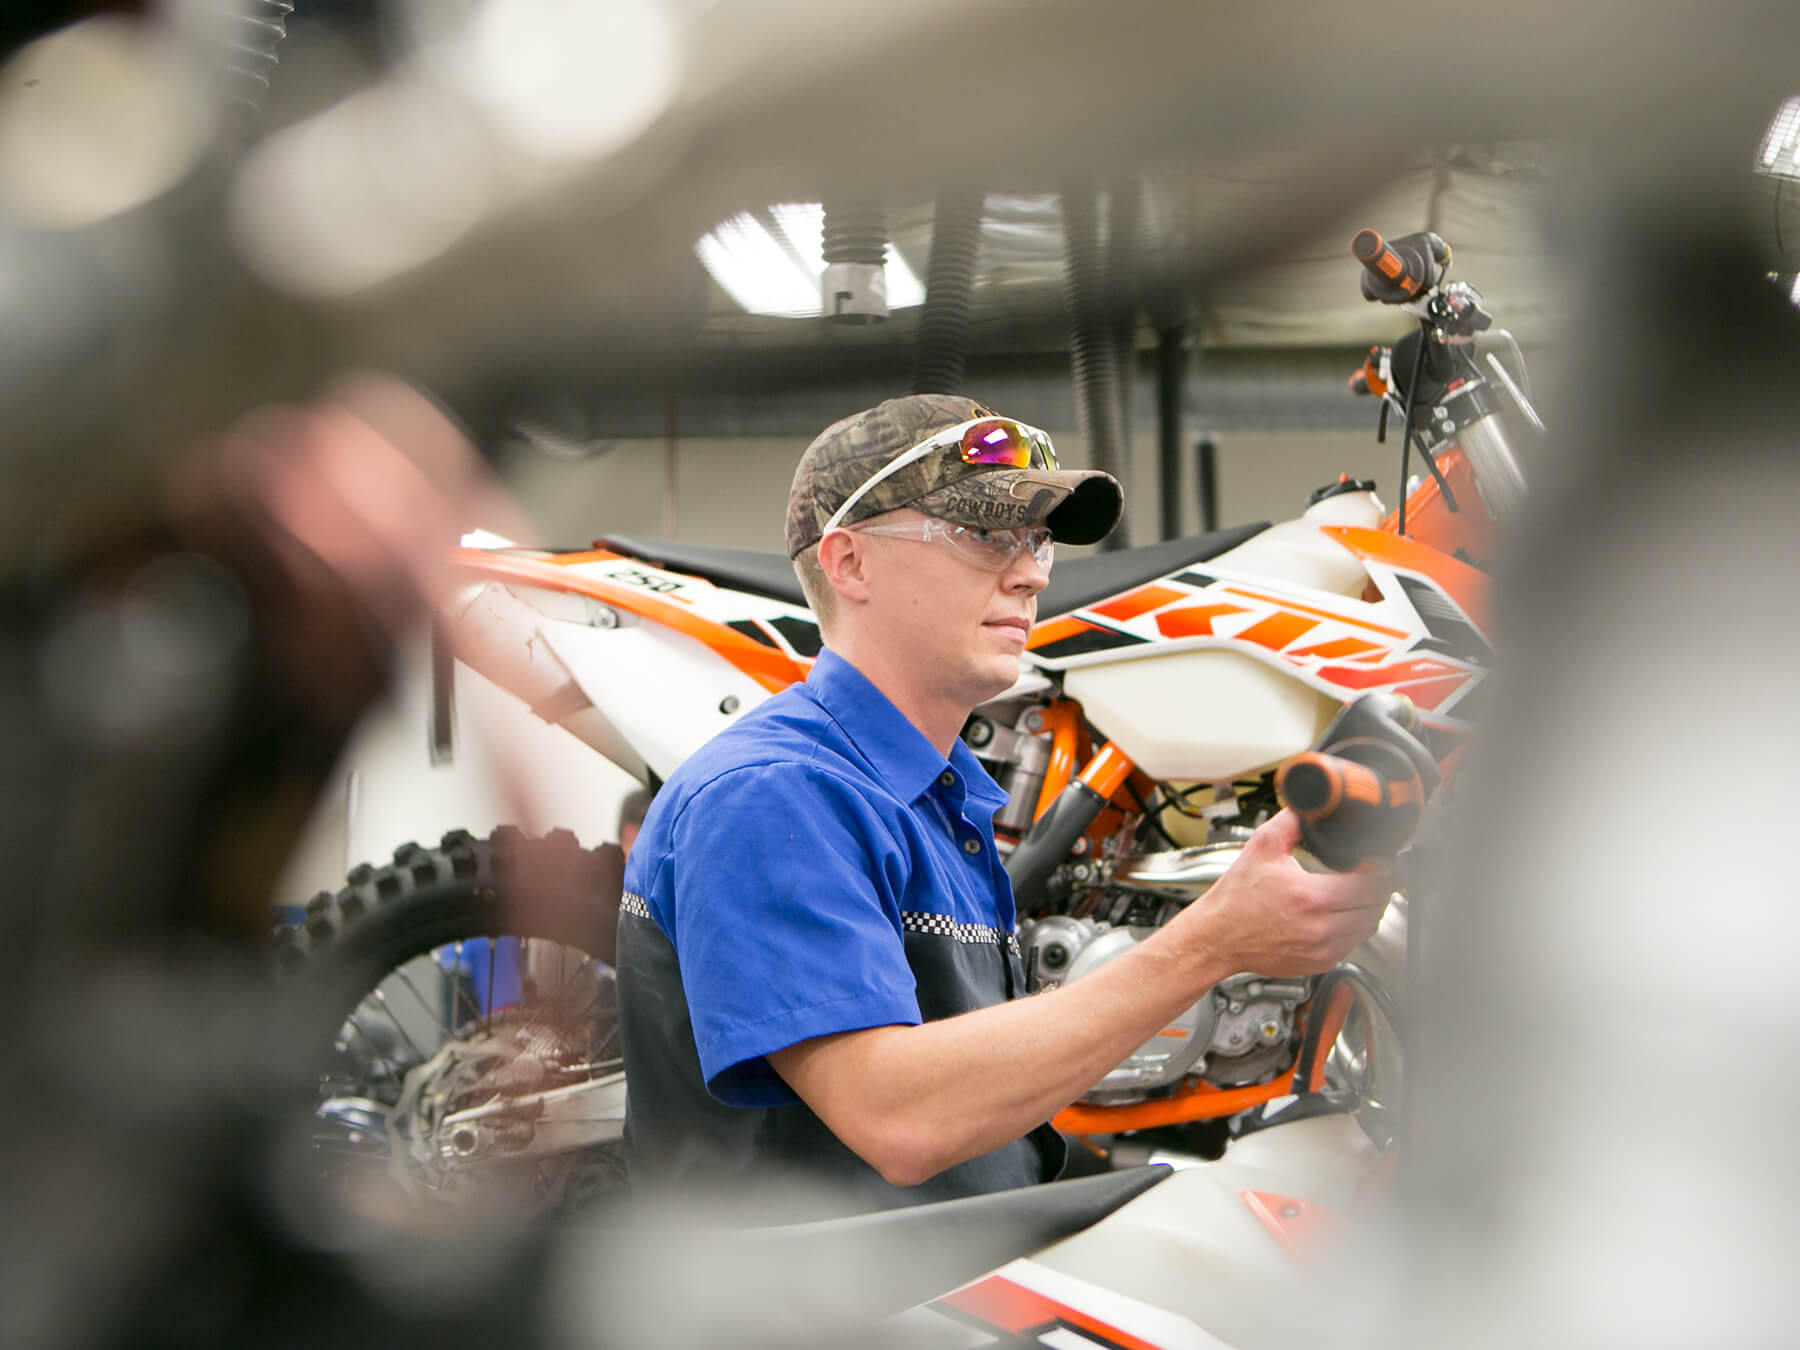 MMI student looking at an orange KTM motorcycle